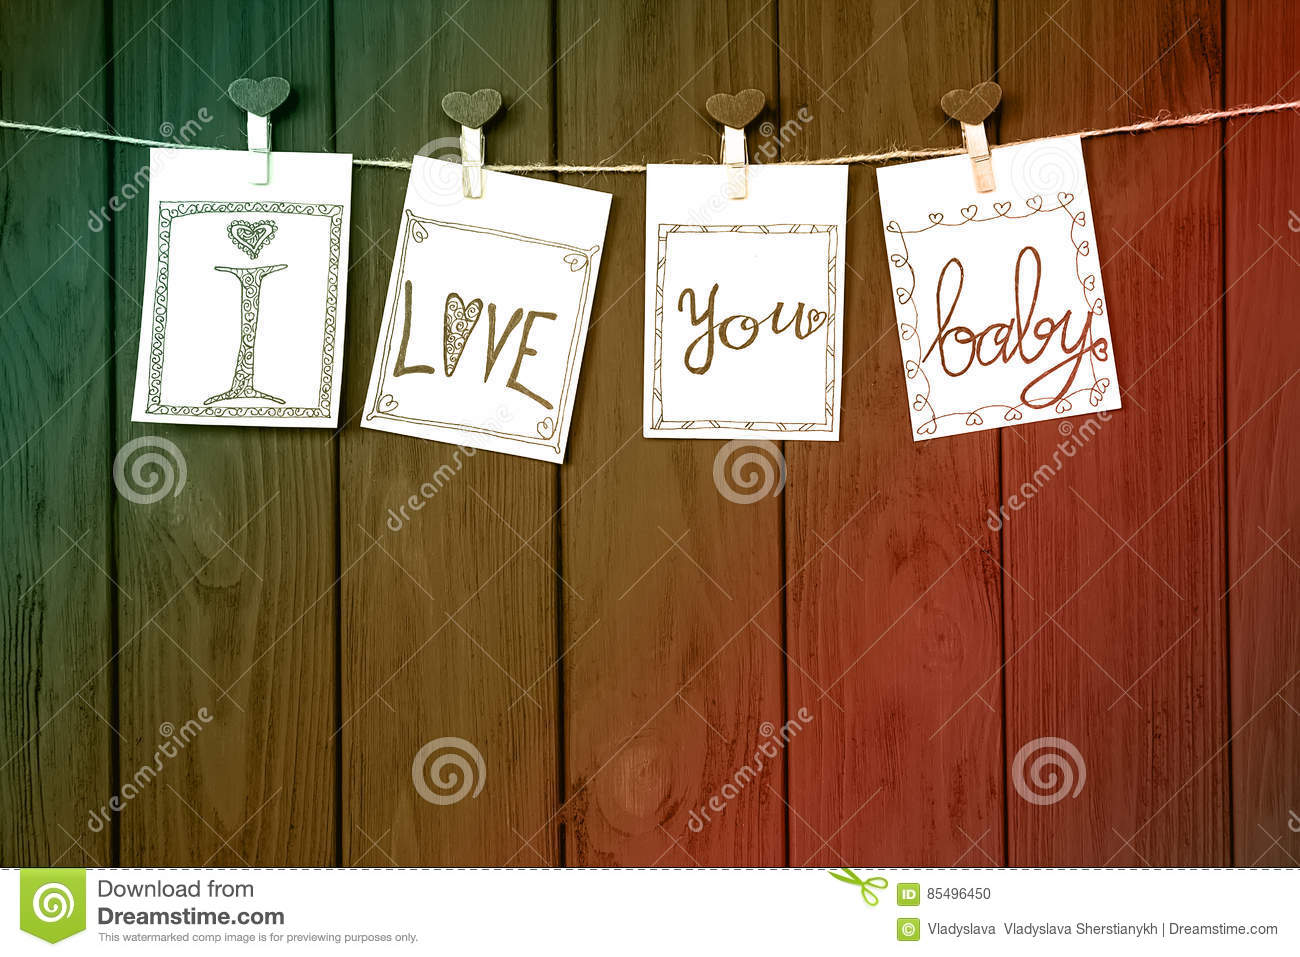 Love Hot Message on the four Valentine`s Cards says `I love you, baby!` on rustic Driftwood texture background.